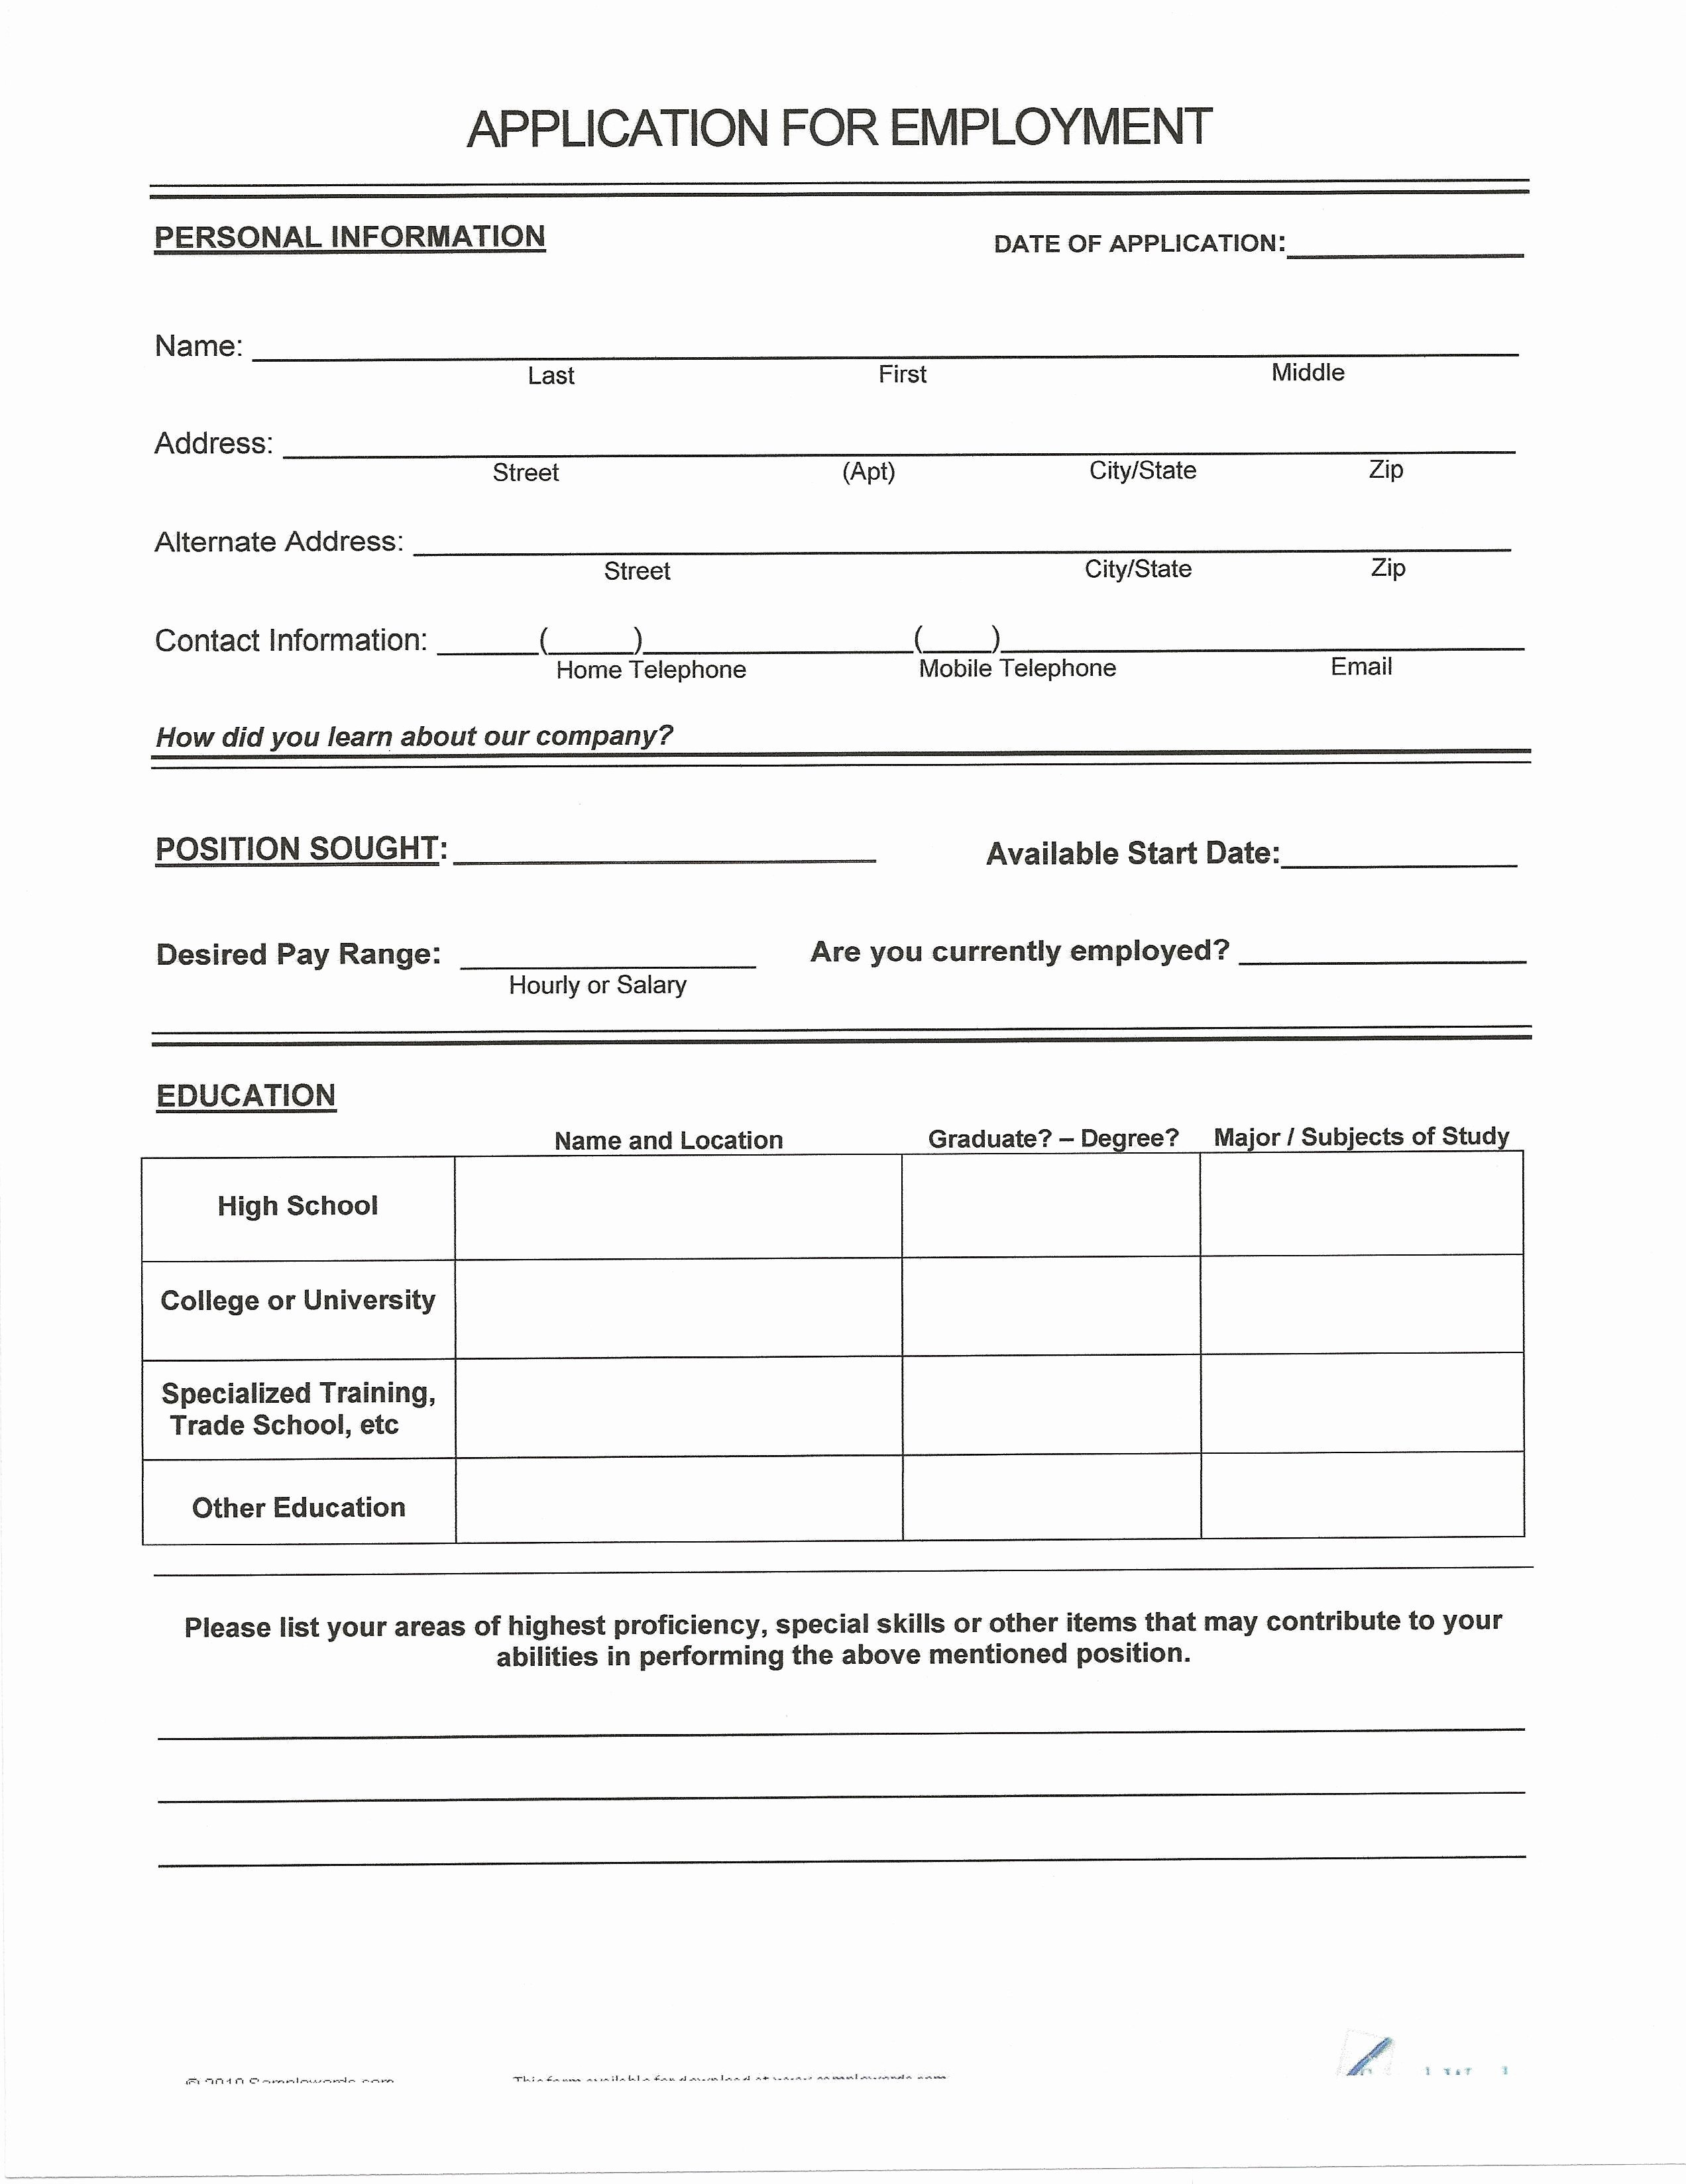 Free Blank Will forms Awesome Unique Free Printable Last Will and Testament Blank forms